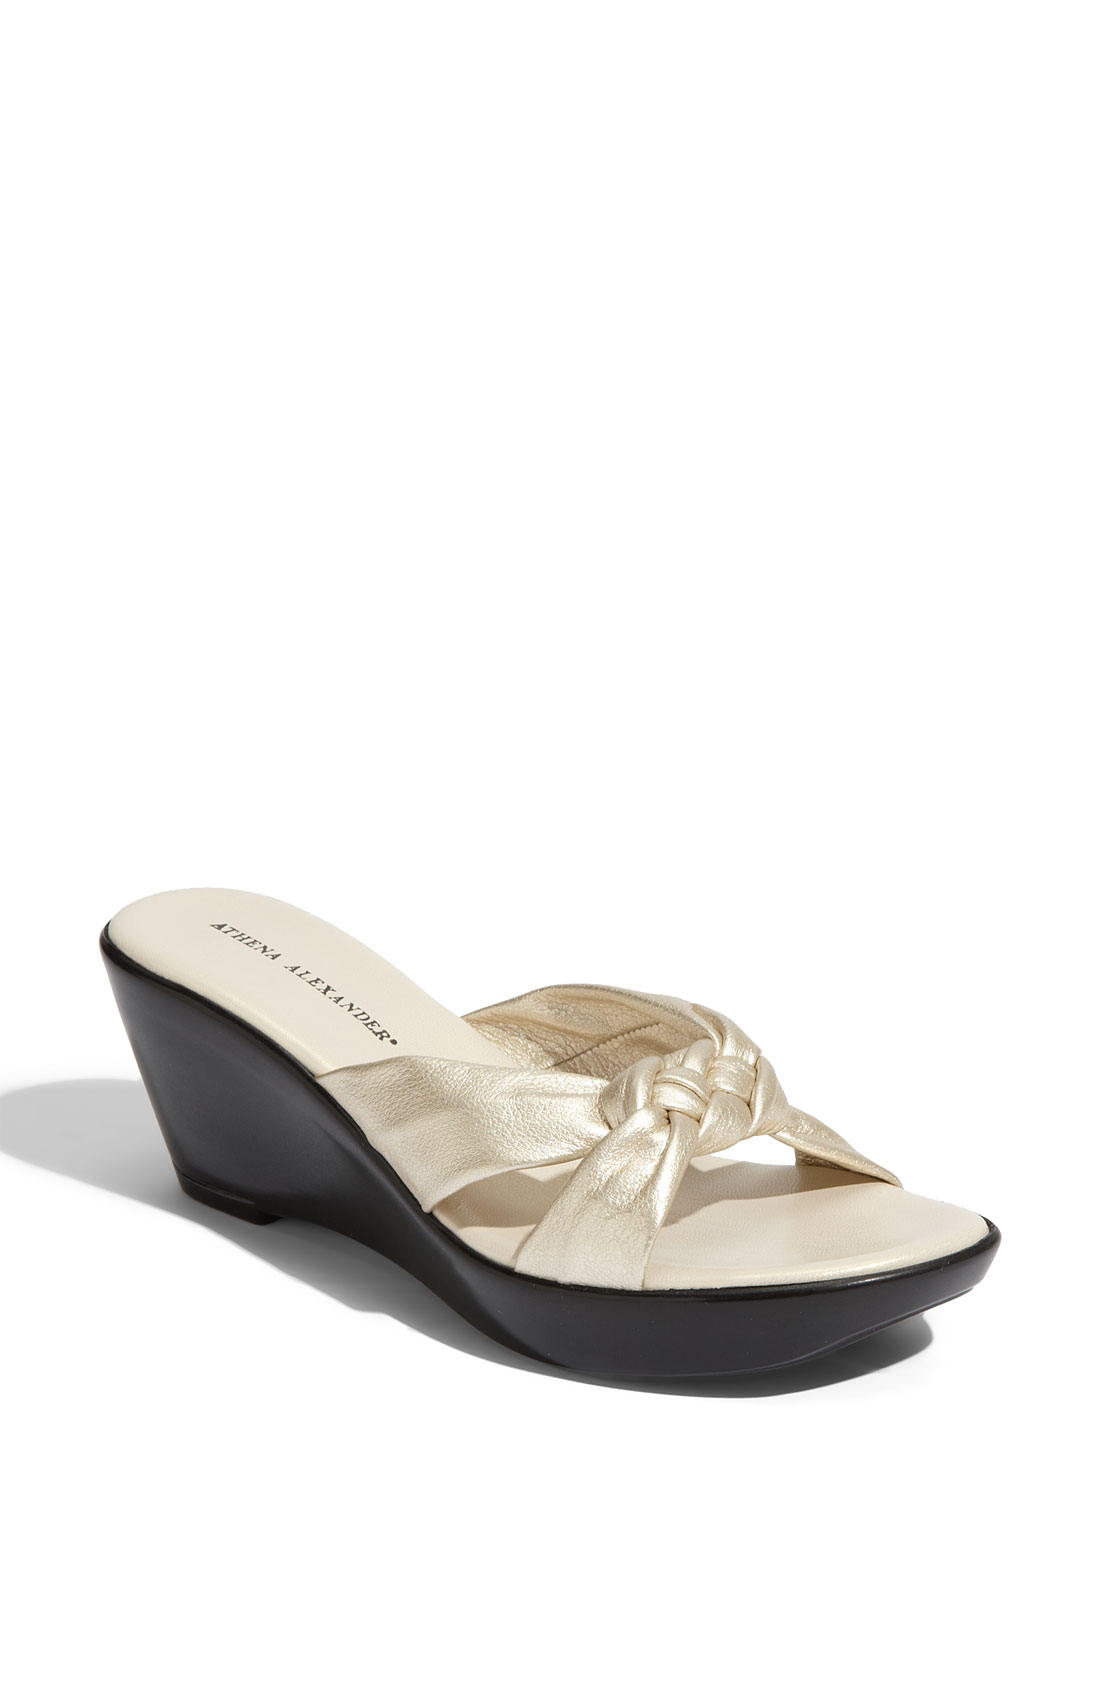 Athena Alexander Diane Wedge Sandal In Gold Champagne Lyst